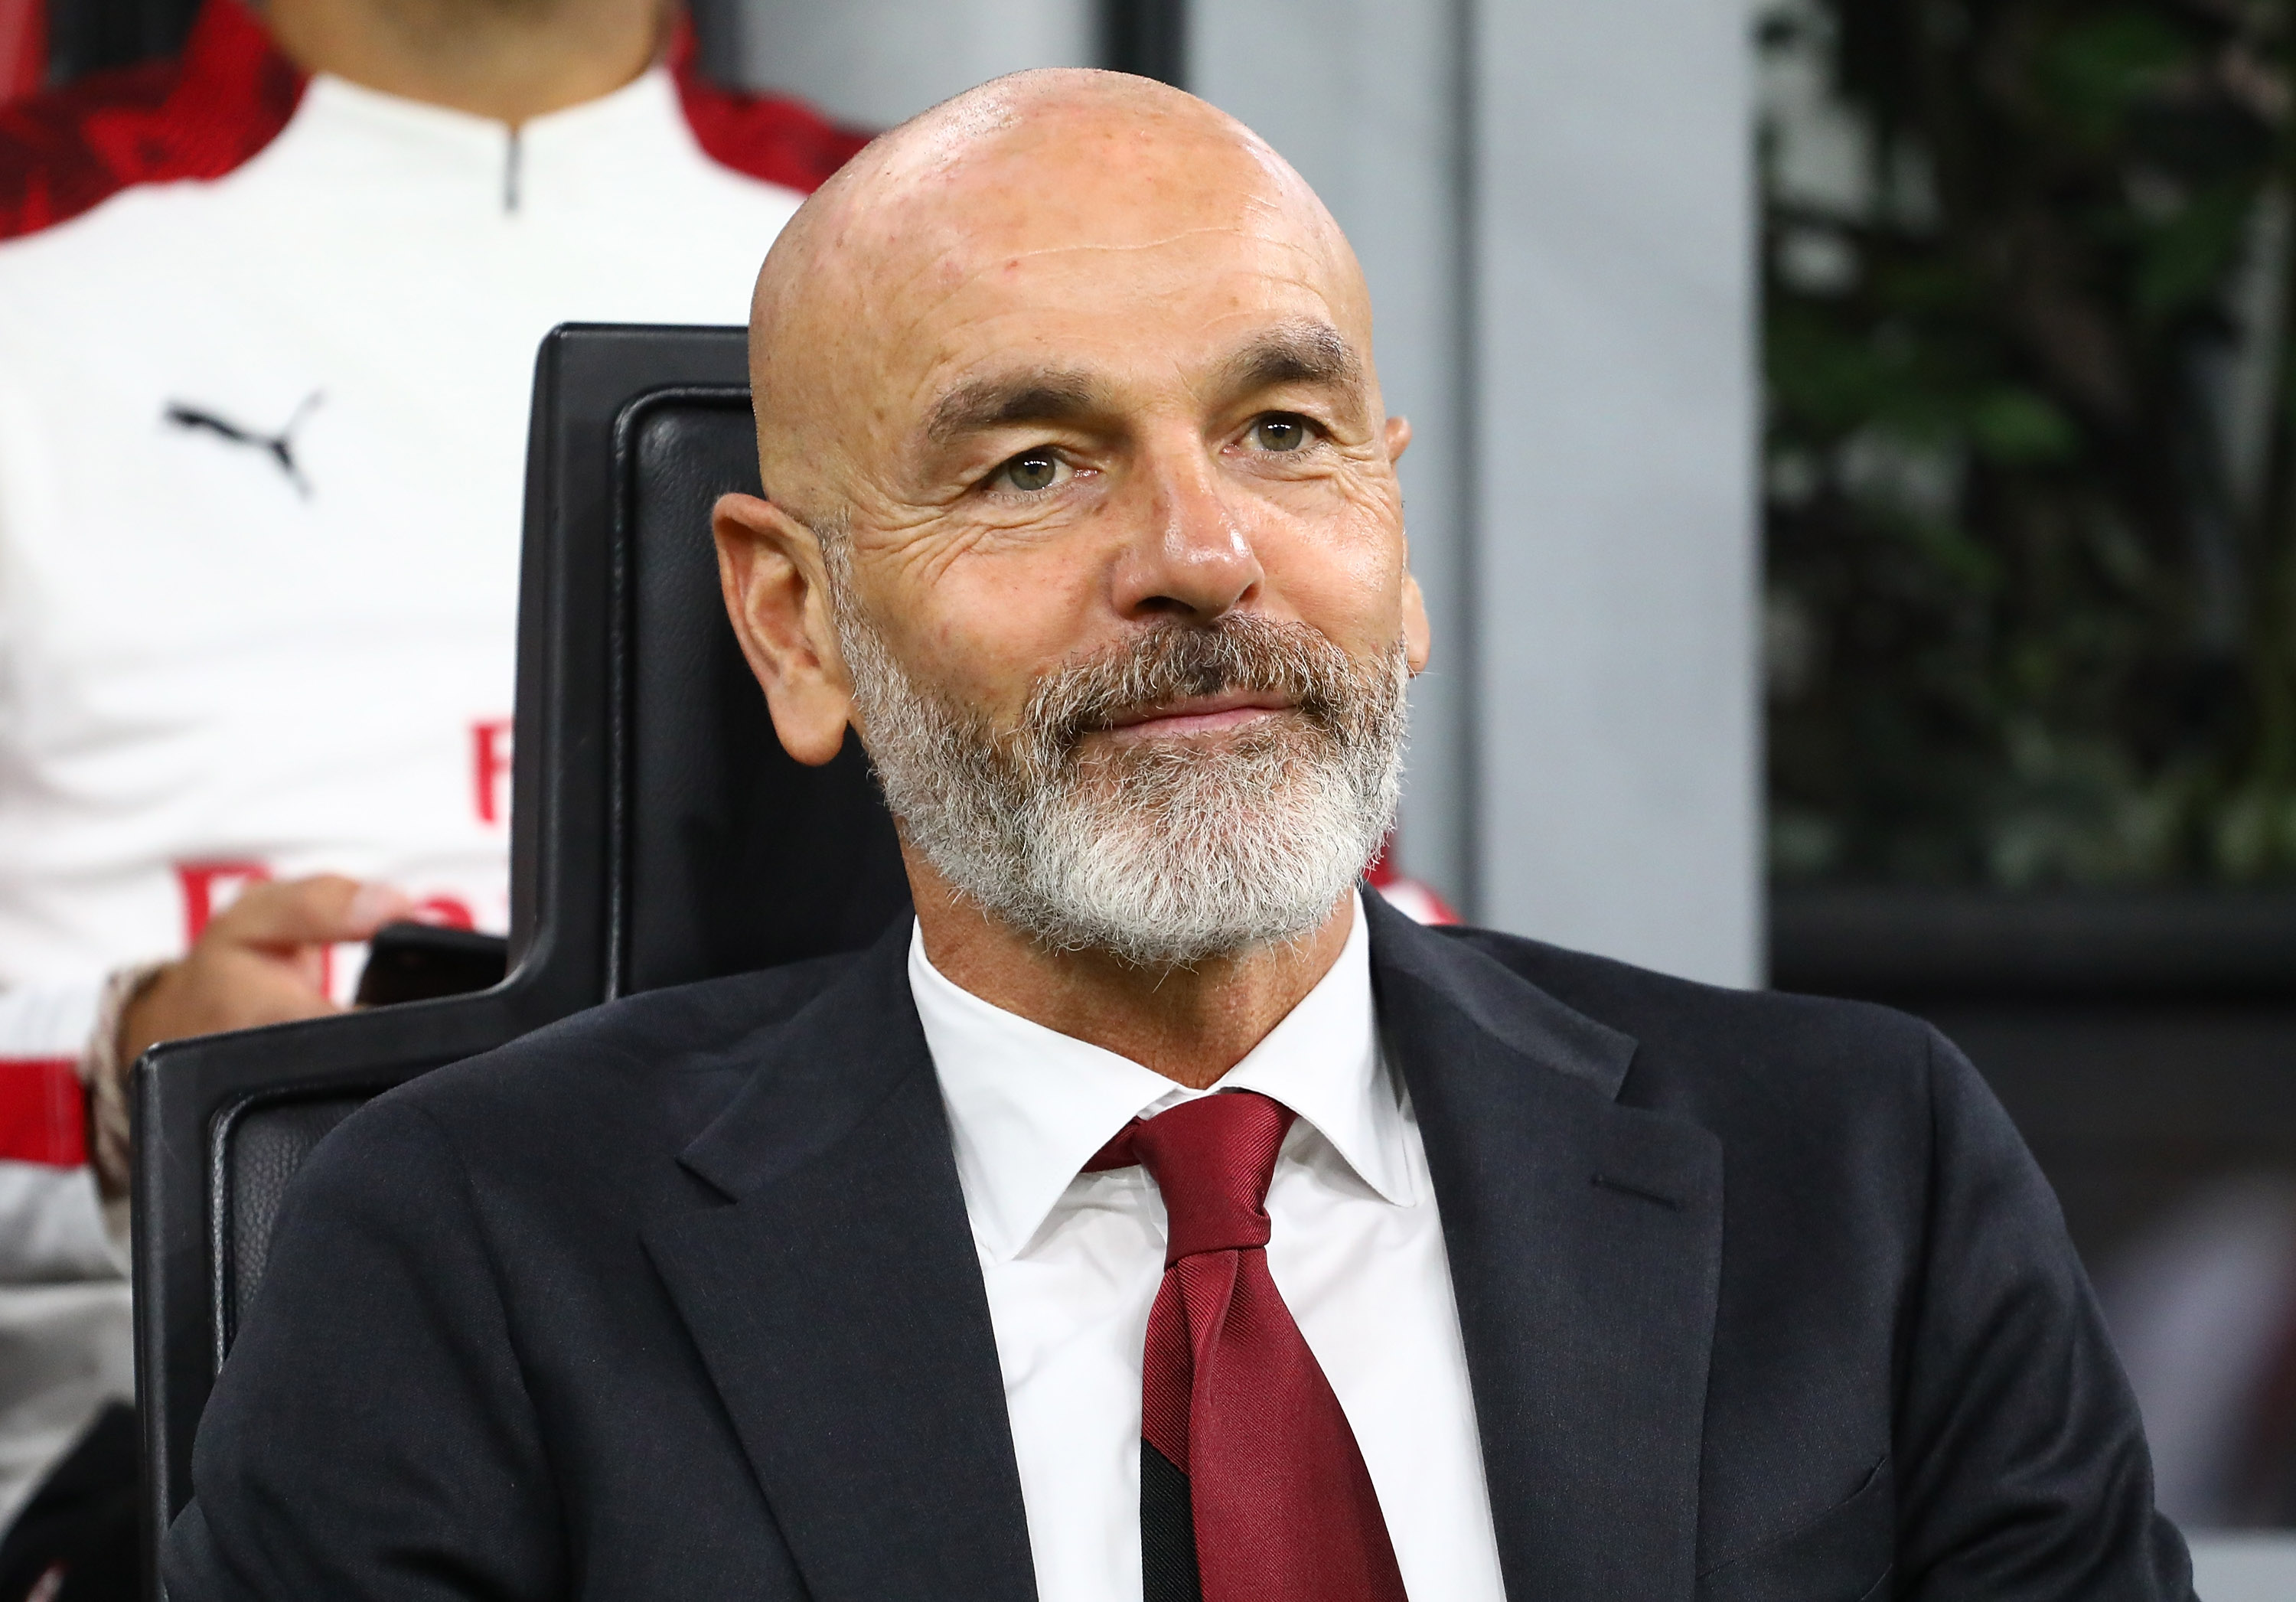 Stefano Pioli will be back on the touchline on Thursday after testing negative for coronavirus (Photo by Marco Luzzani/Getty Images)